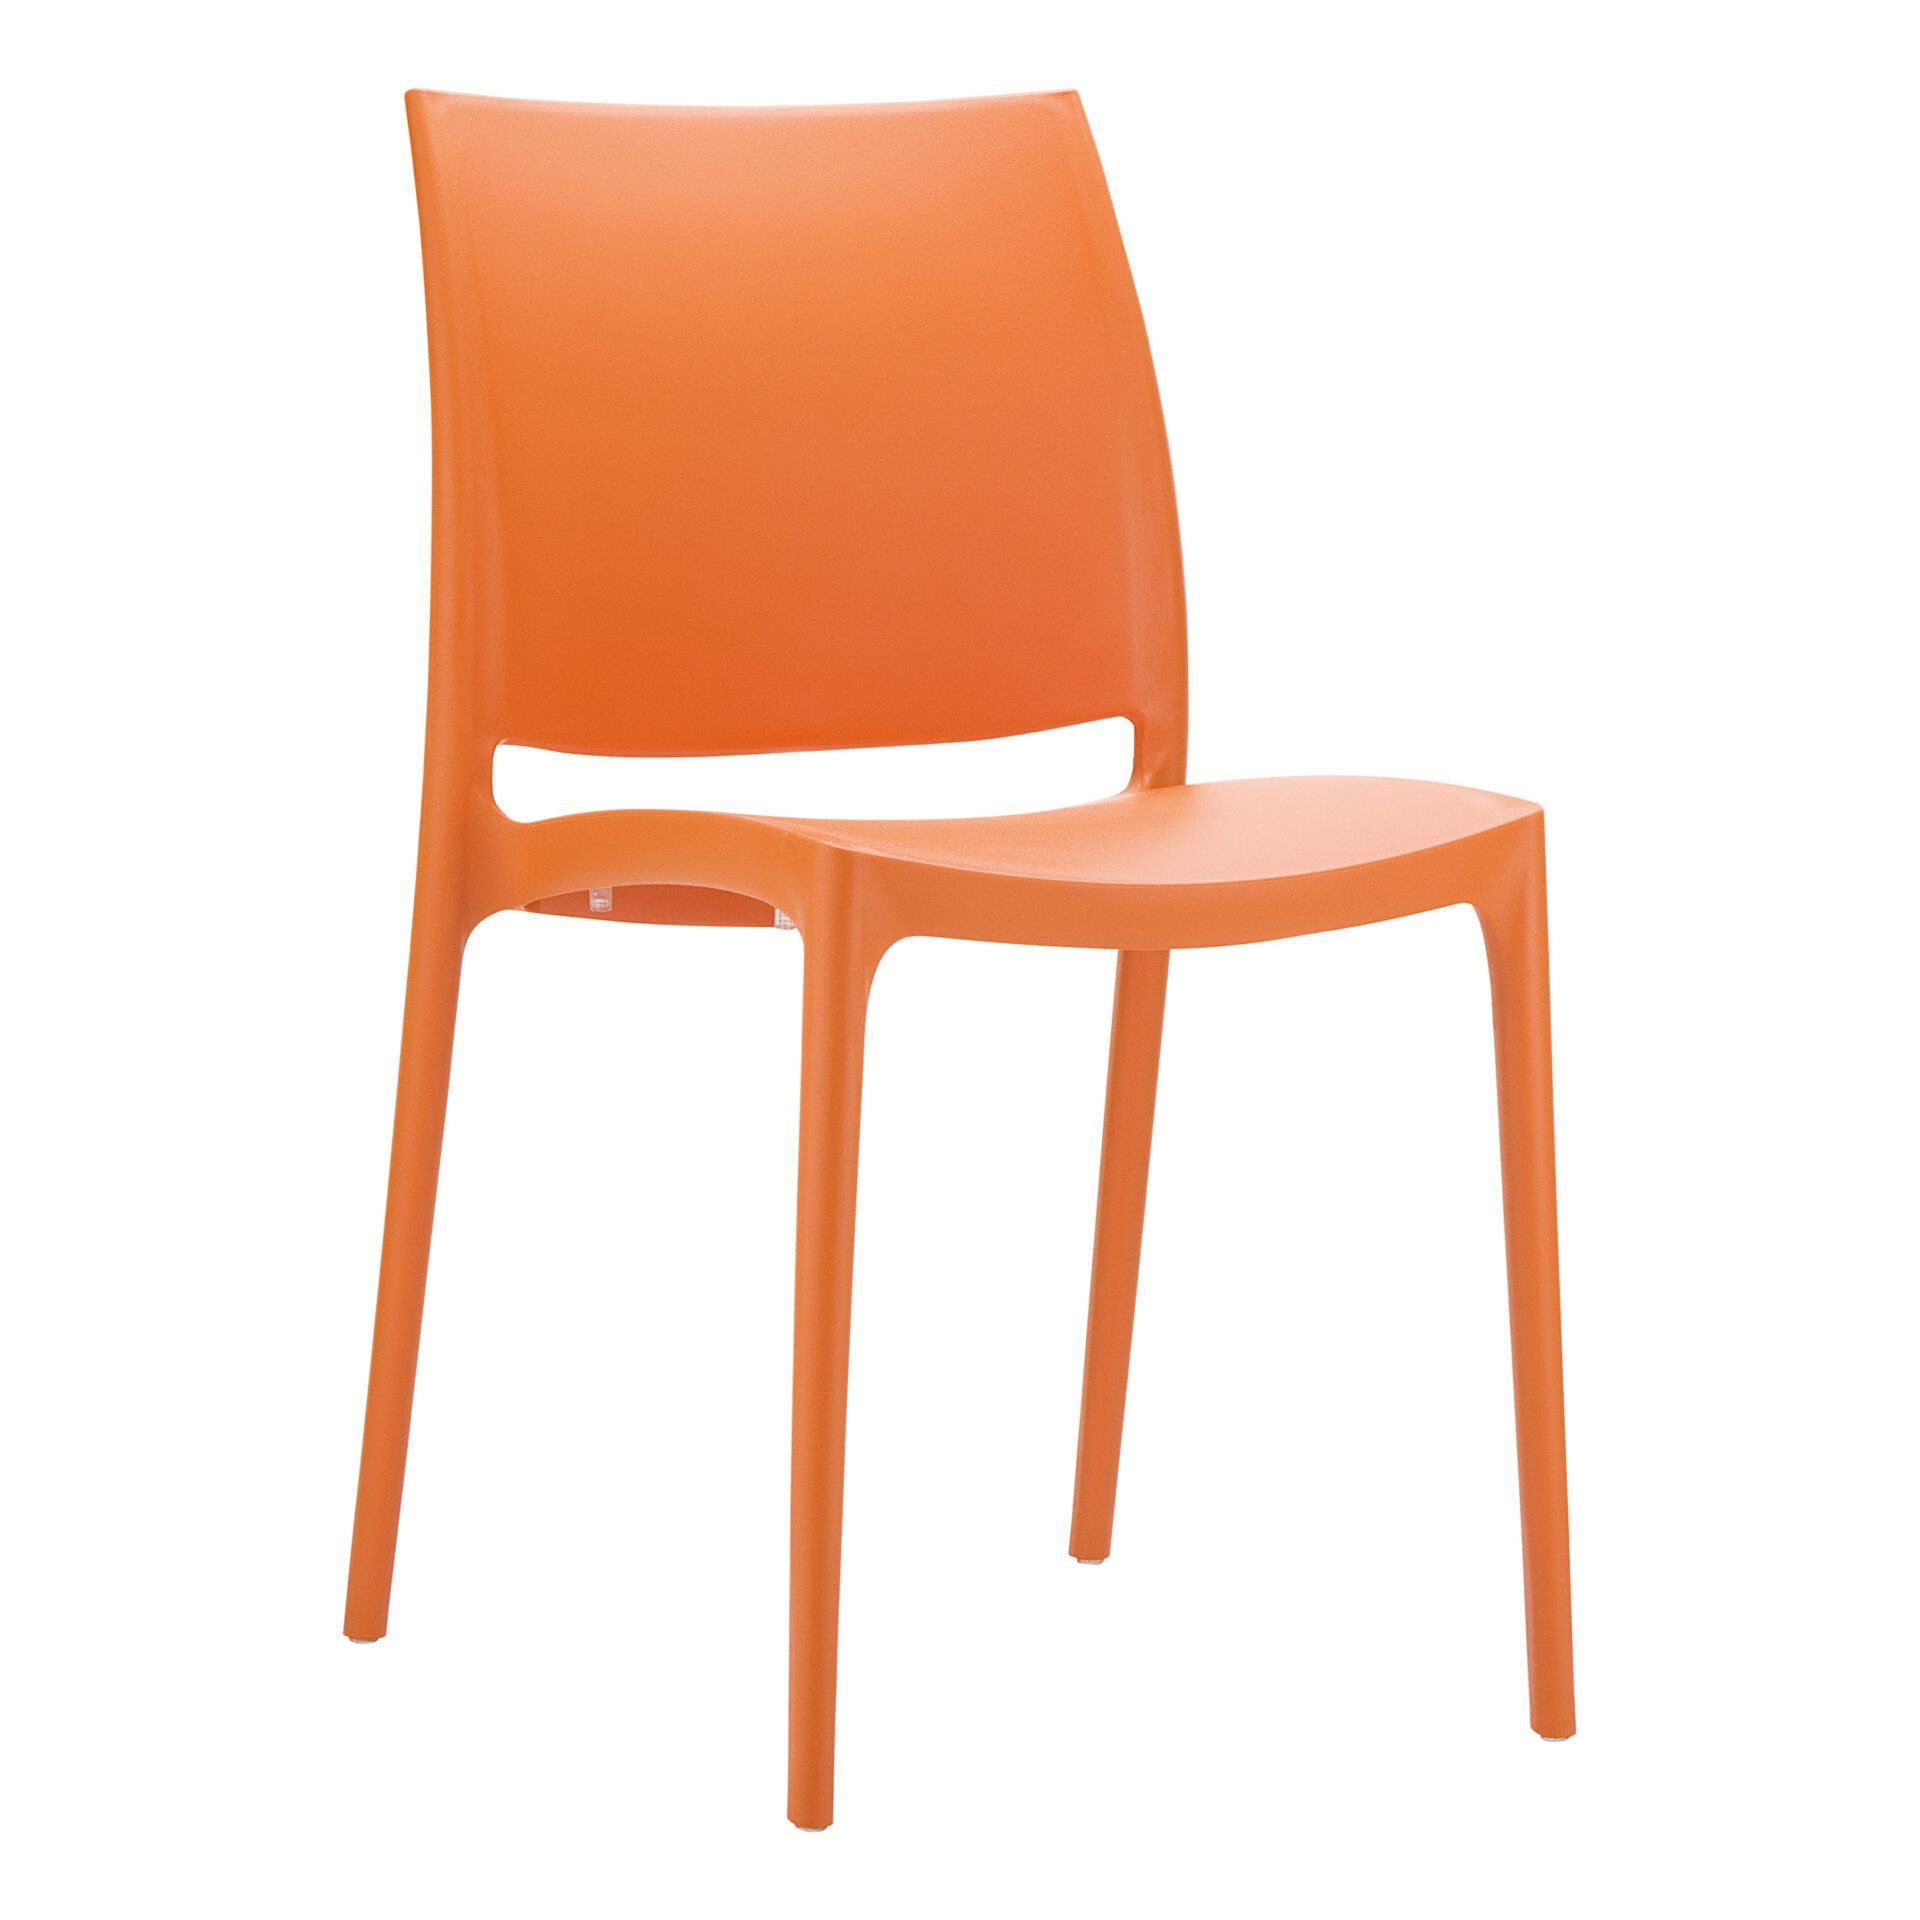 outdoor dining maya chair orange front side